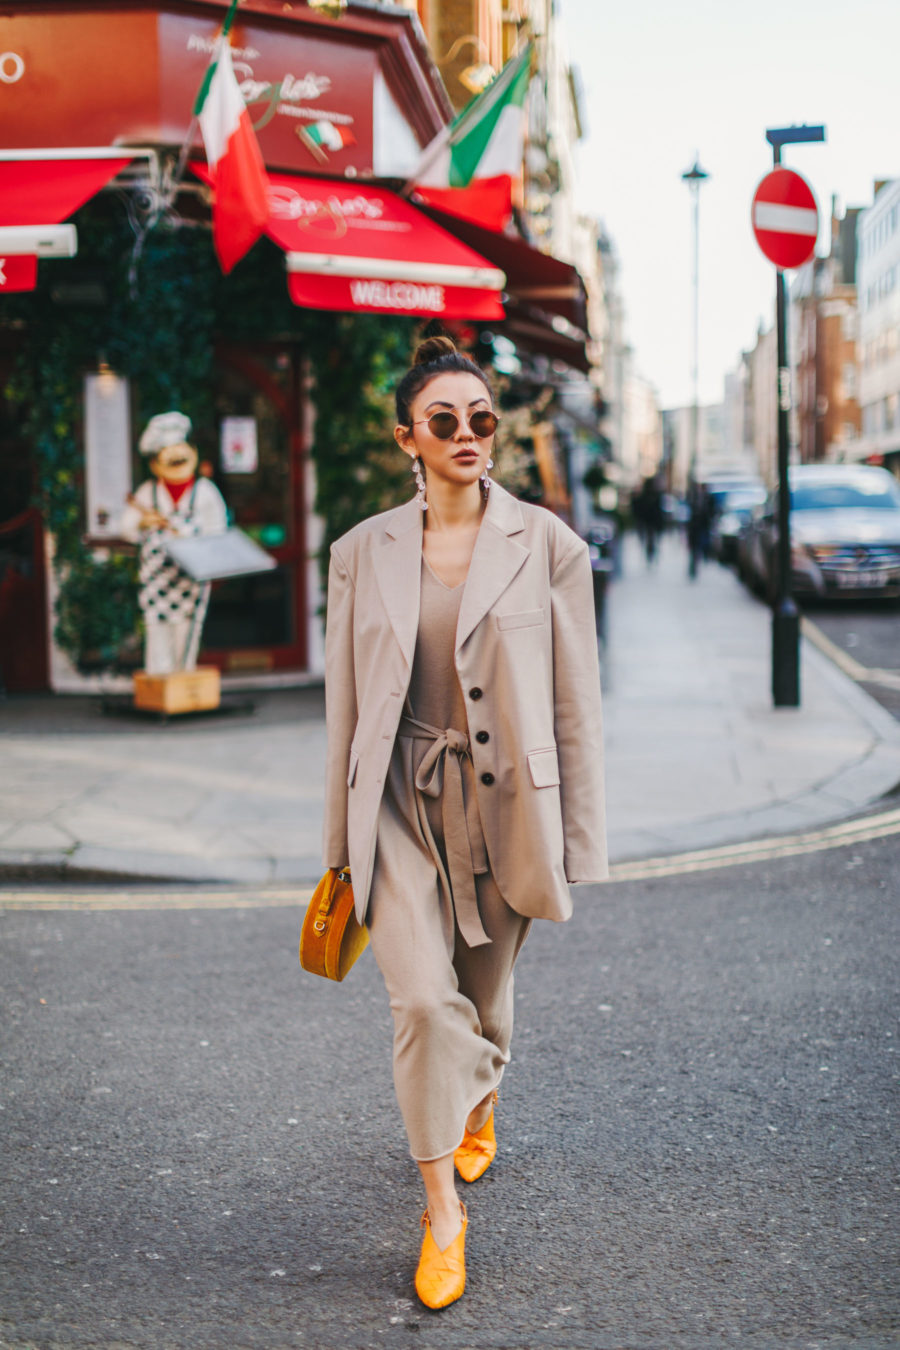 how to prepare for nyfw, how to prepare for fashion week, lfw street style // Notjessfashion.com